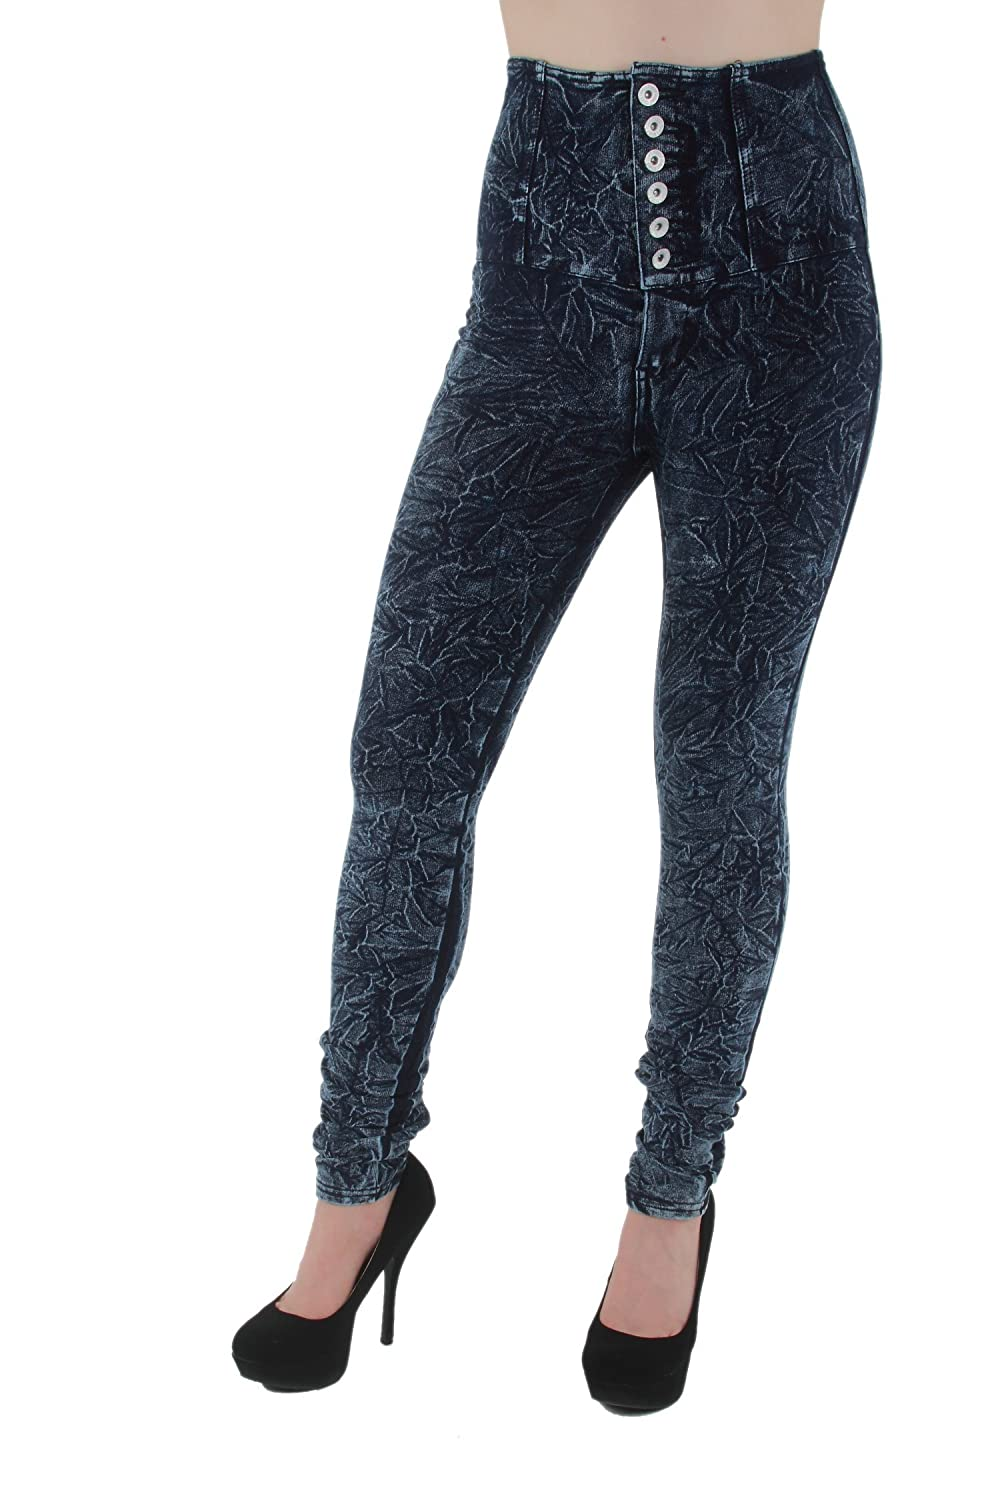 12113 – LAVO Jeans - Stretch High-Waist Acid Washed Skinny Pants